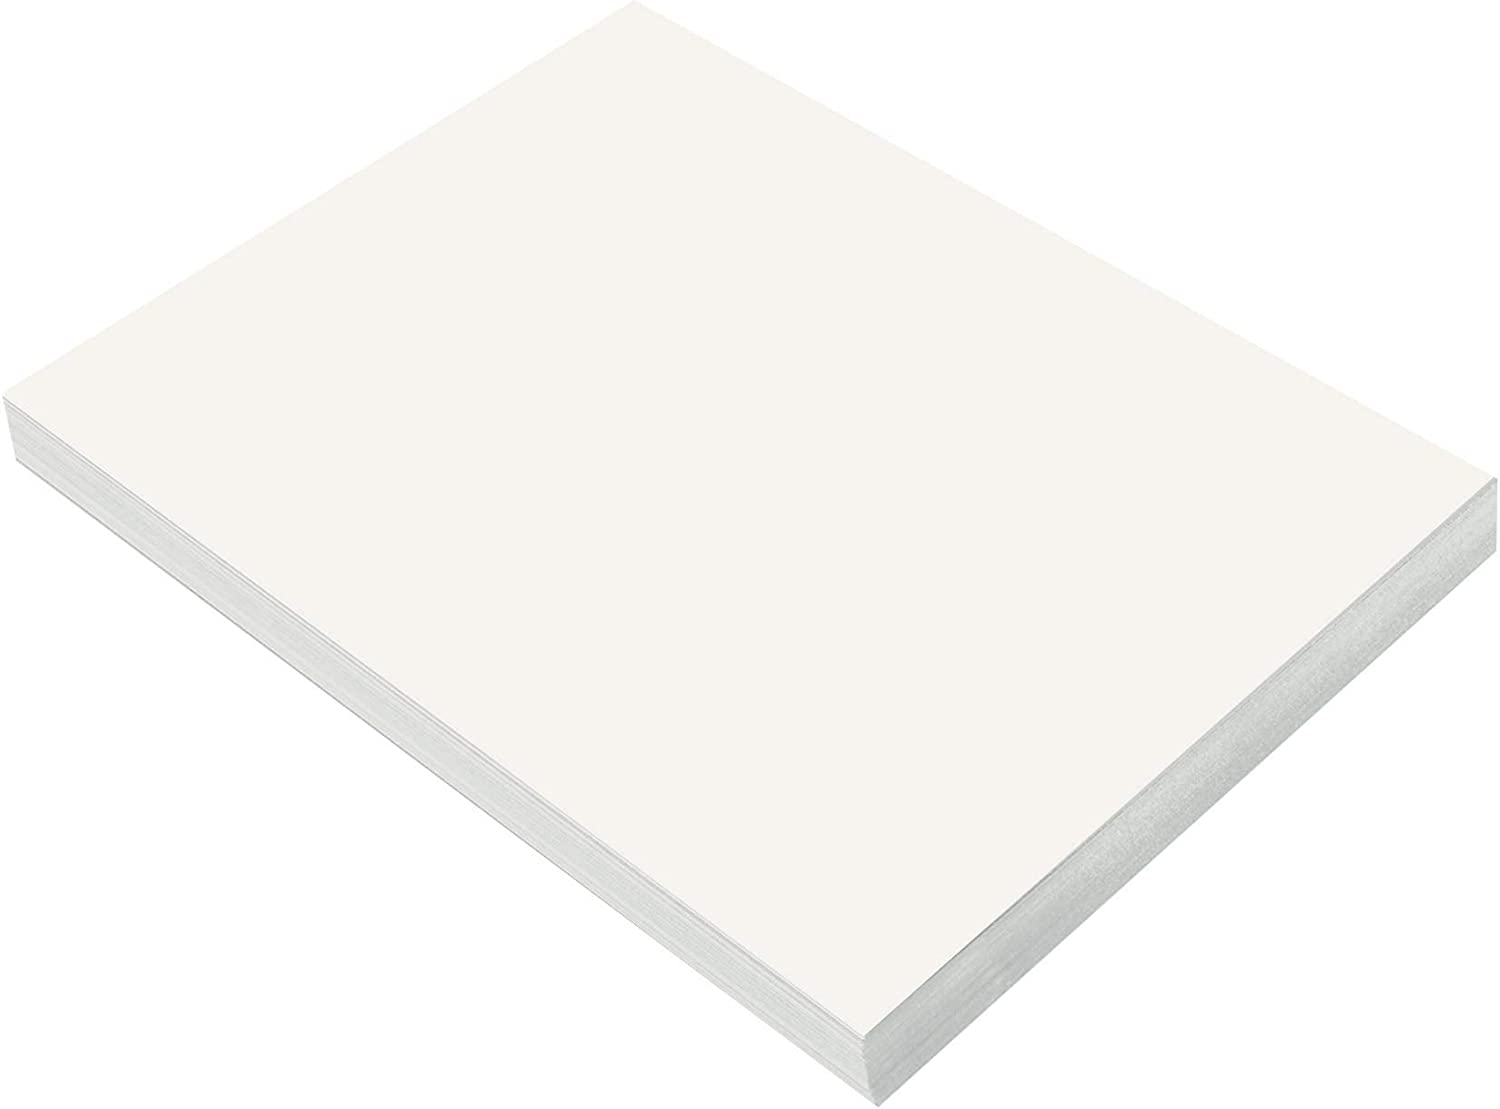 SunWorks Heavyweight Construction Paper, 9 x 12 Inches, White, 100 Sheets : Office Products